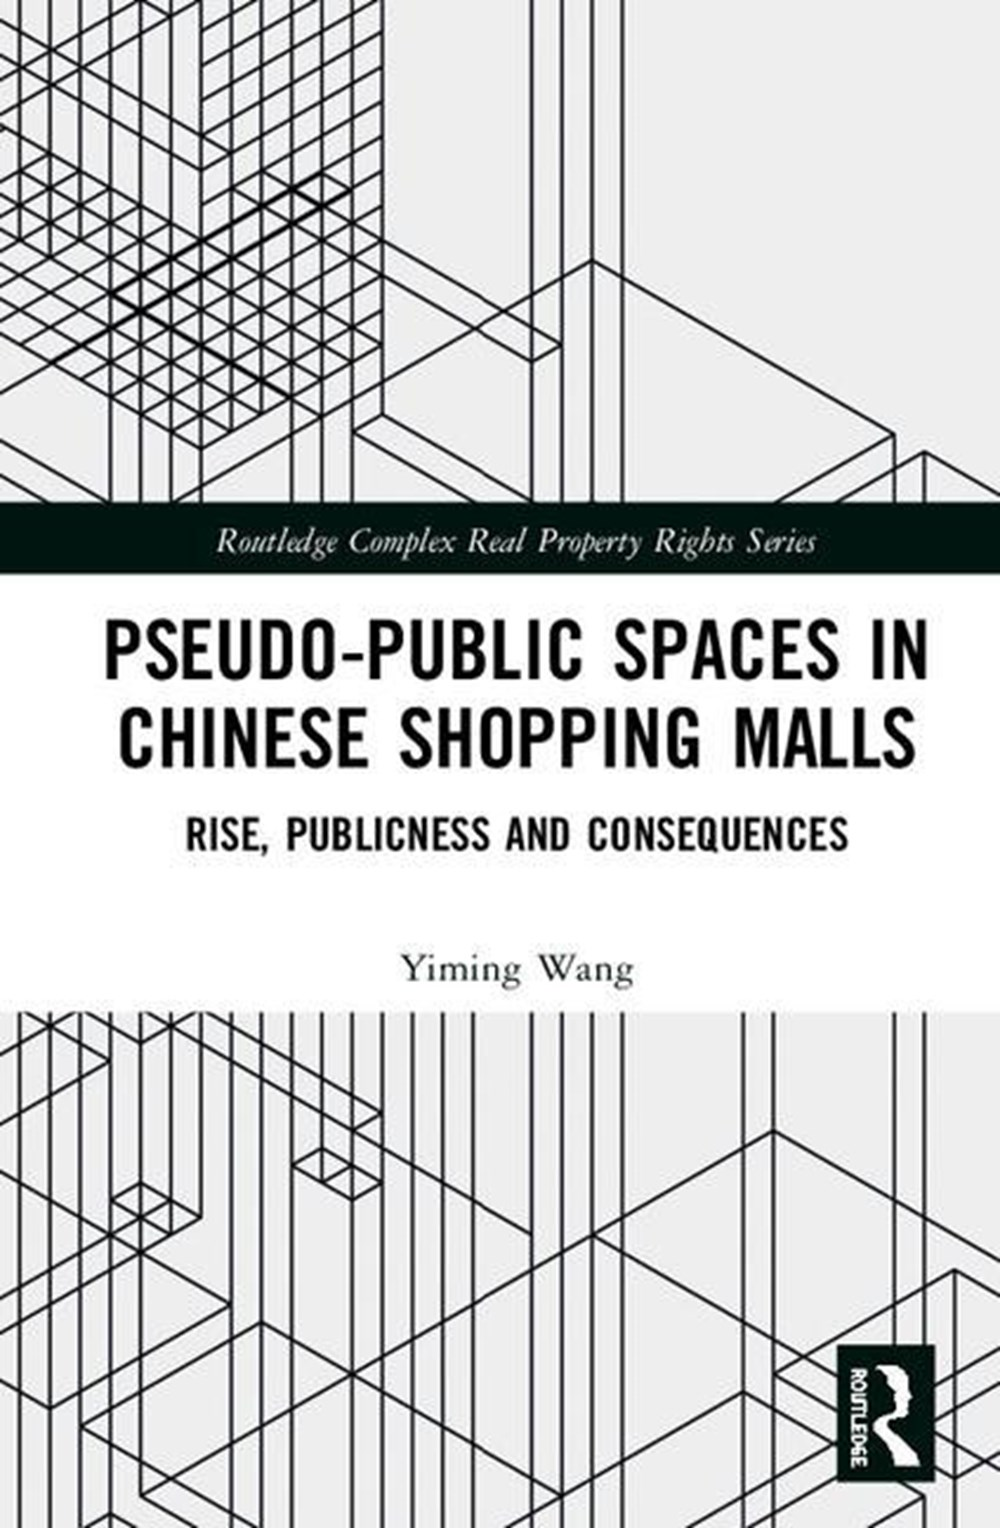 Pseudo-Public Spaces in Chinese Shopping Malls Rise, Publicness and Consequences